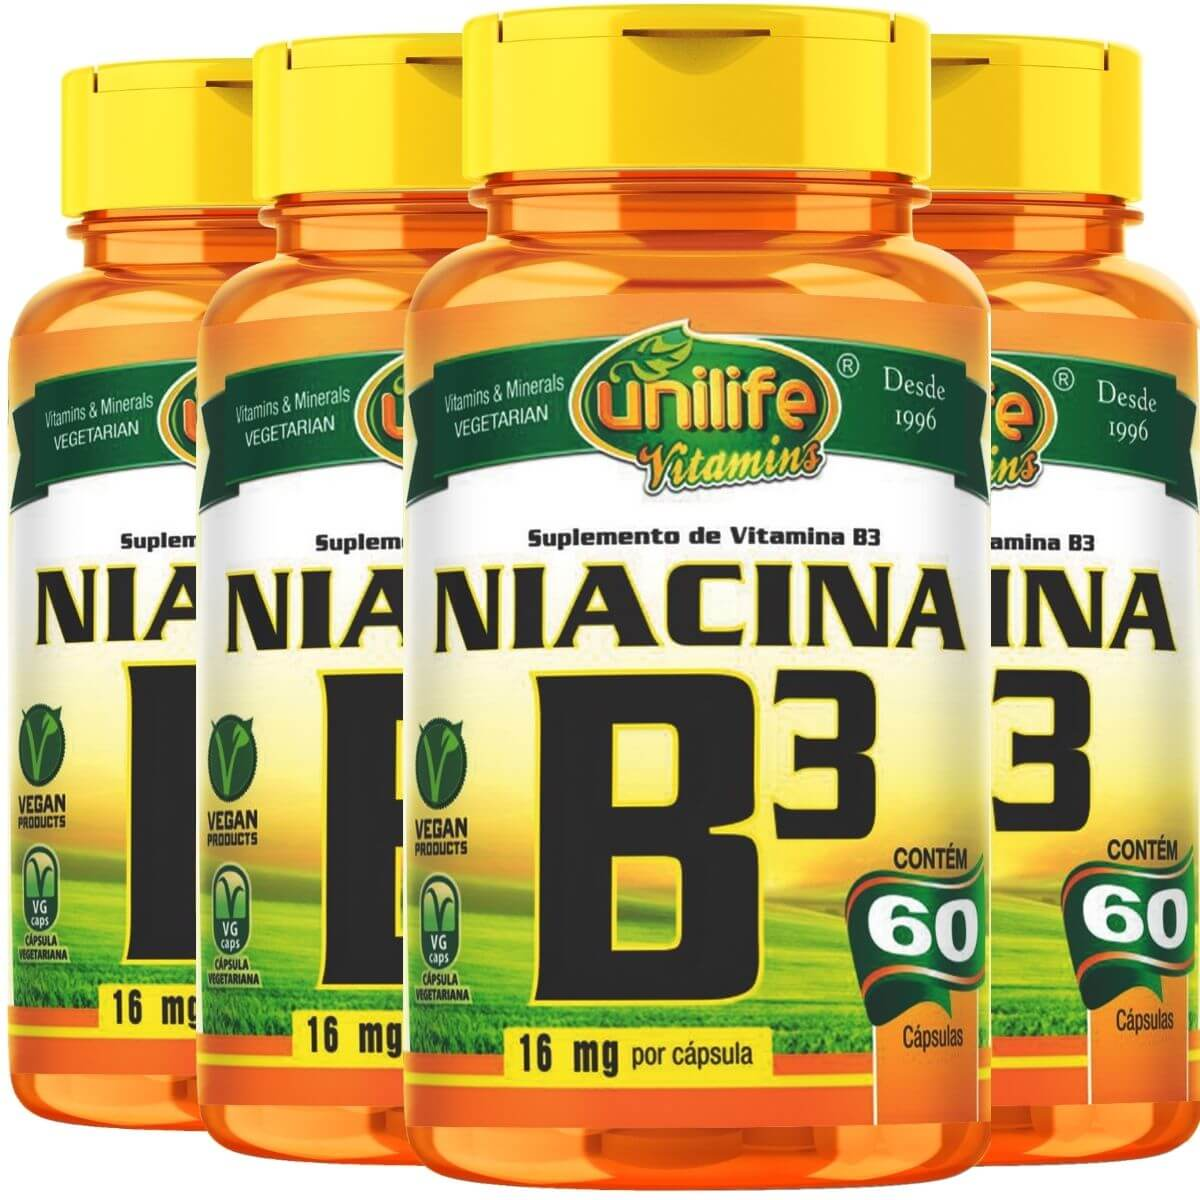 Kit 4 Vitamina B3 Niacina - Unilife 60 Cáps 500mg